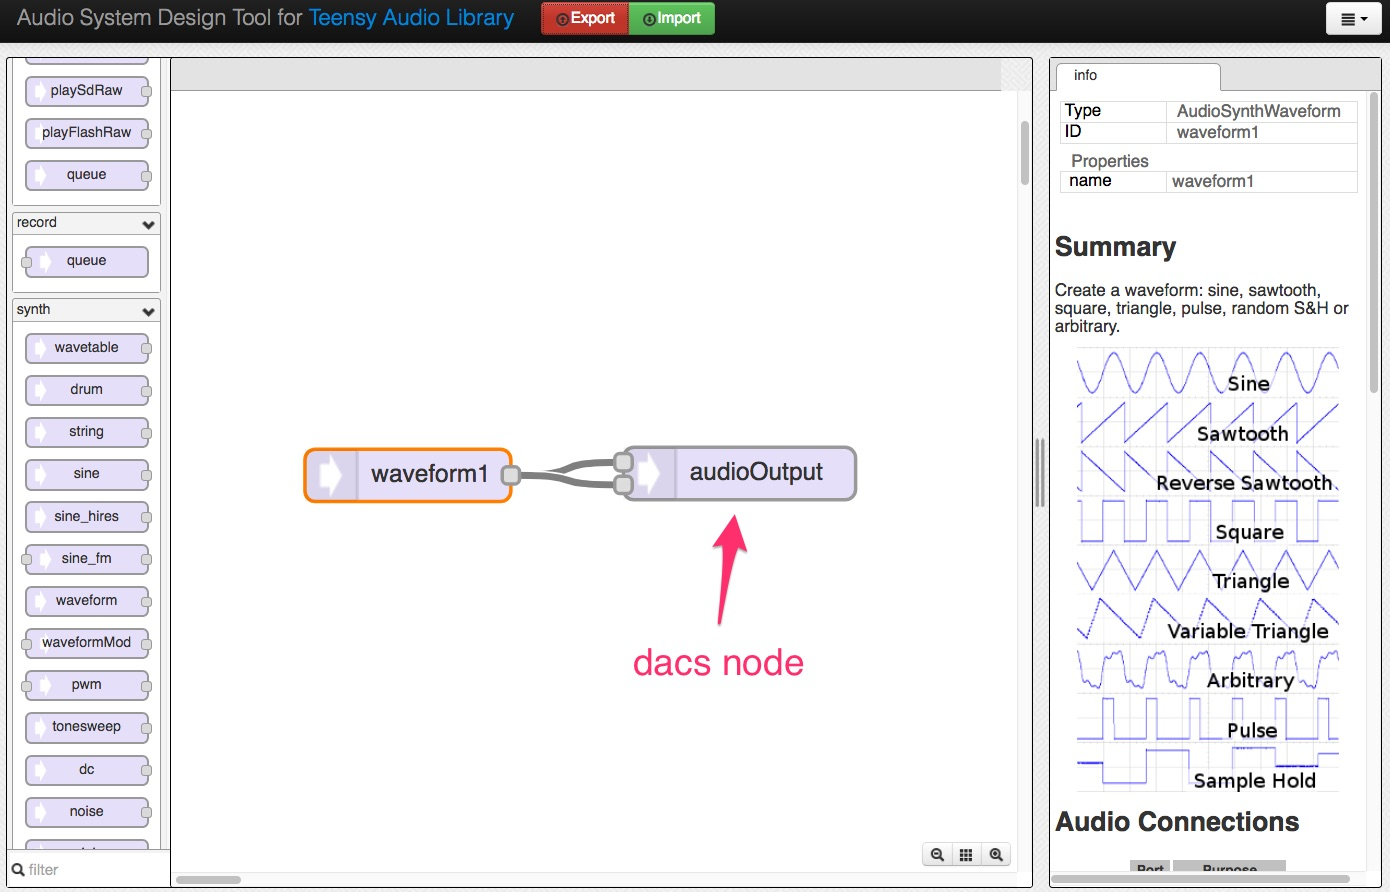 adabox_Audio_System_Design_Tool_for_Teensy_Audio_Library_15.jpg